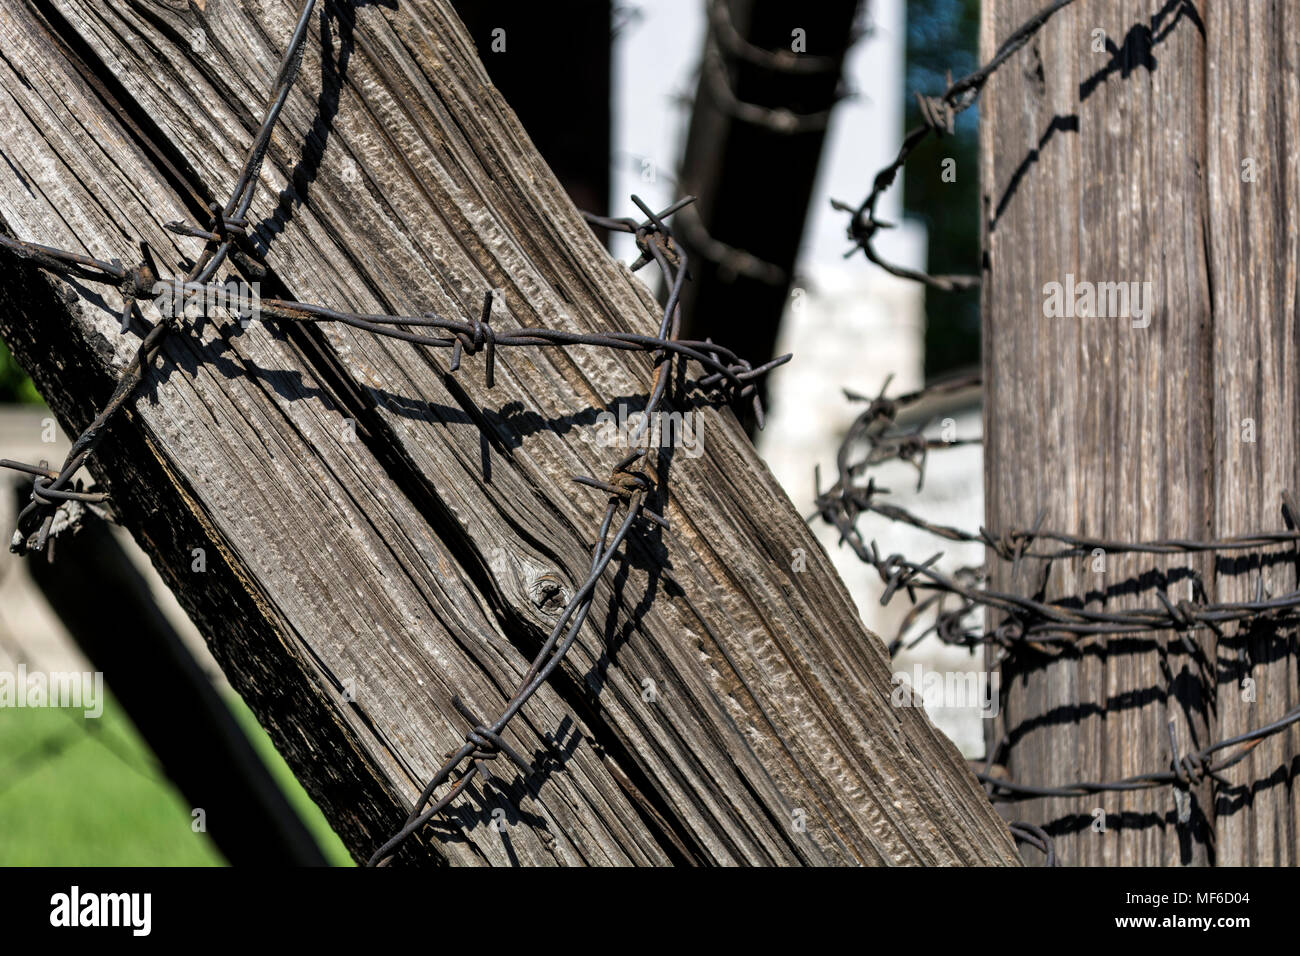 NIS, SERBIA - APRIL 21, 2018: Barbed wire on old wooden beam. Selective focus, close up - Stock Image